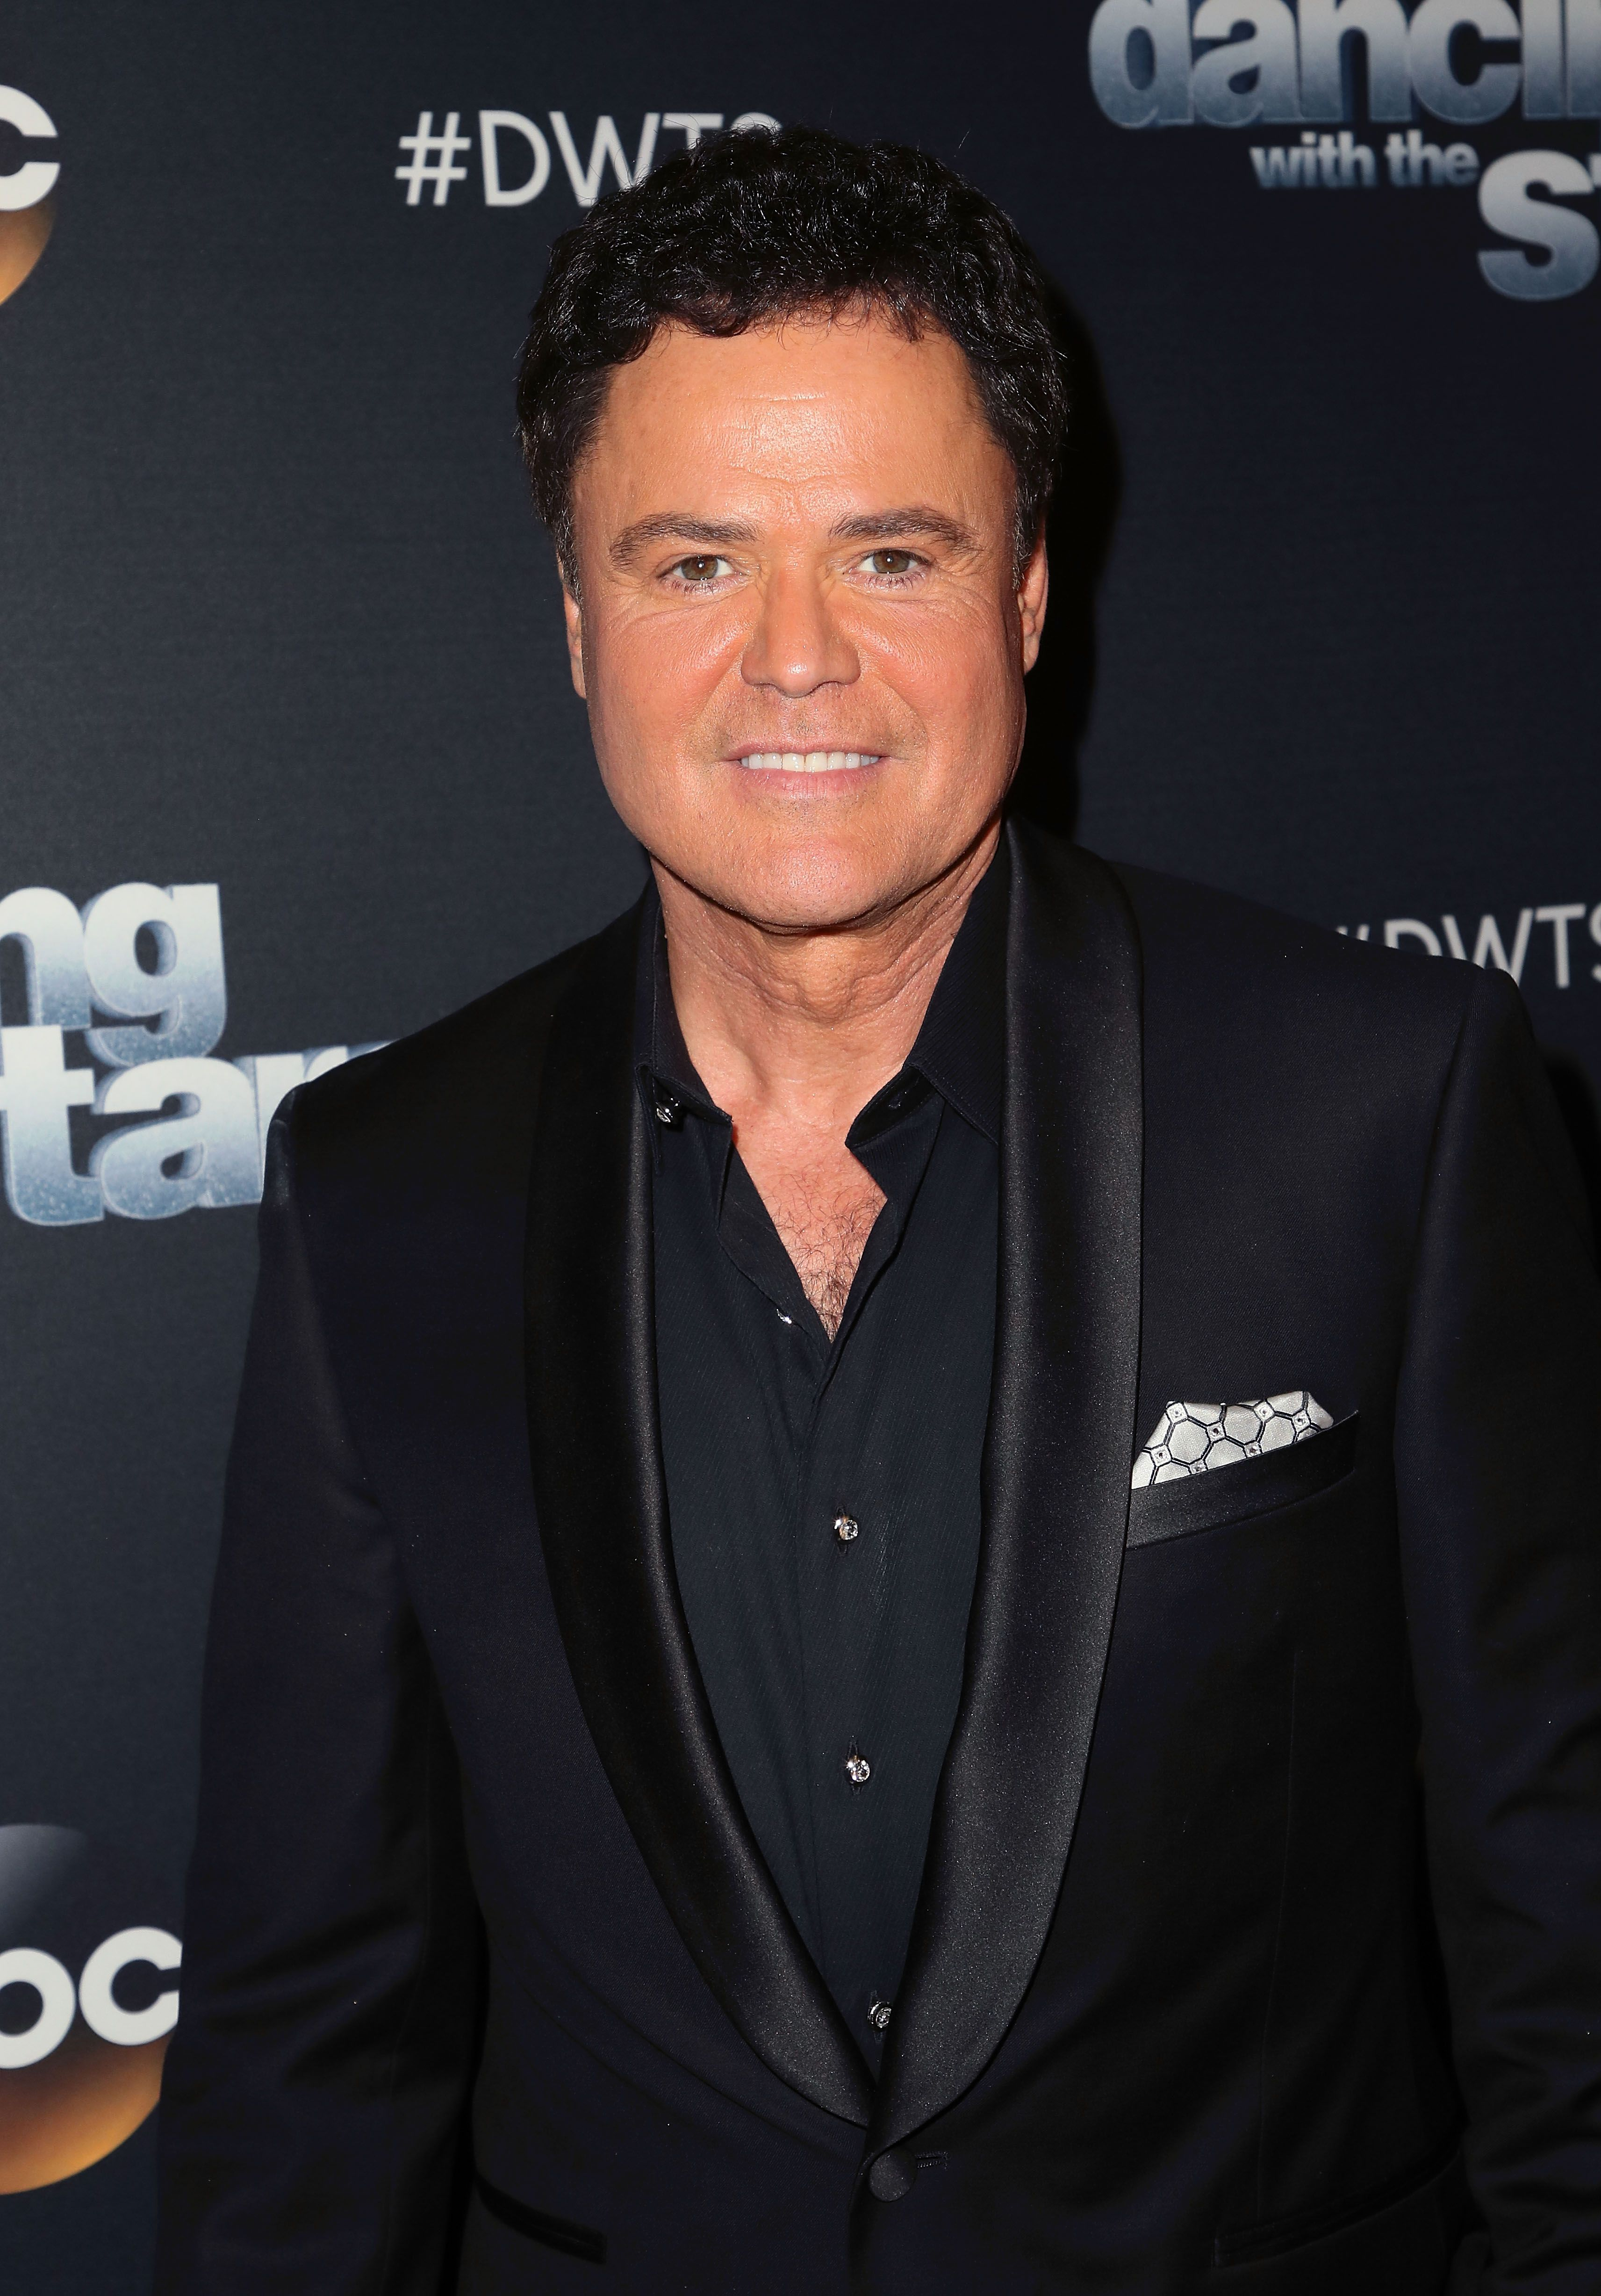 """Donny Osmond at the """"Dancing with the Stars"""" Season 27 premiere in 2018 in Los Angeles, California 